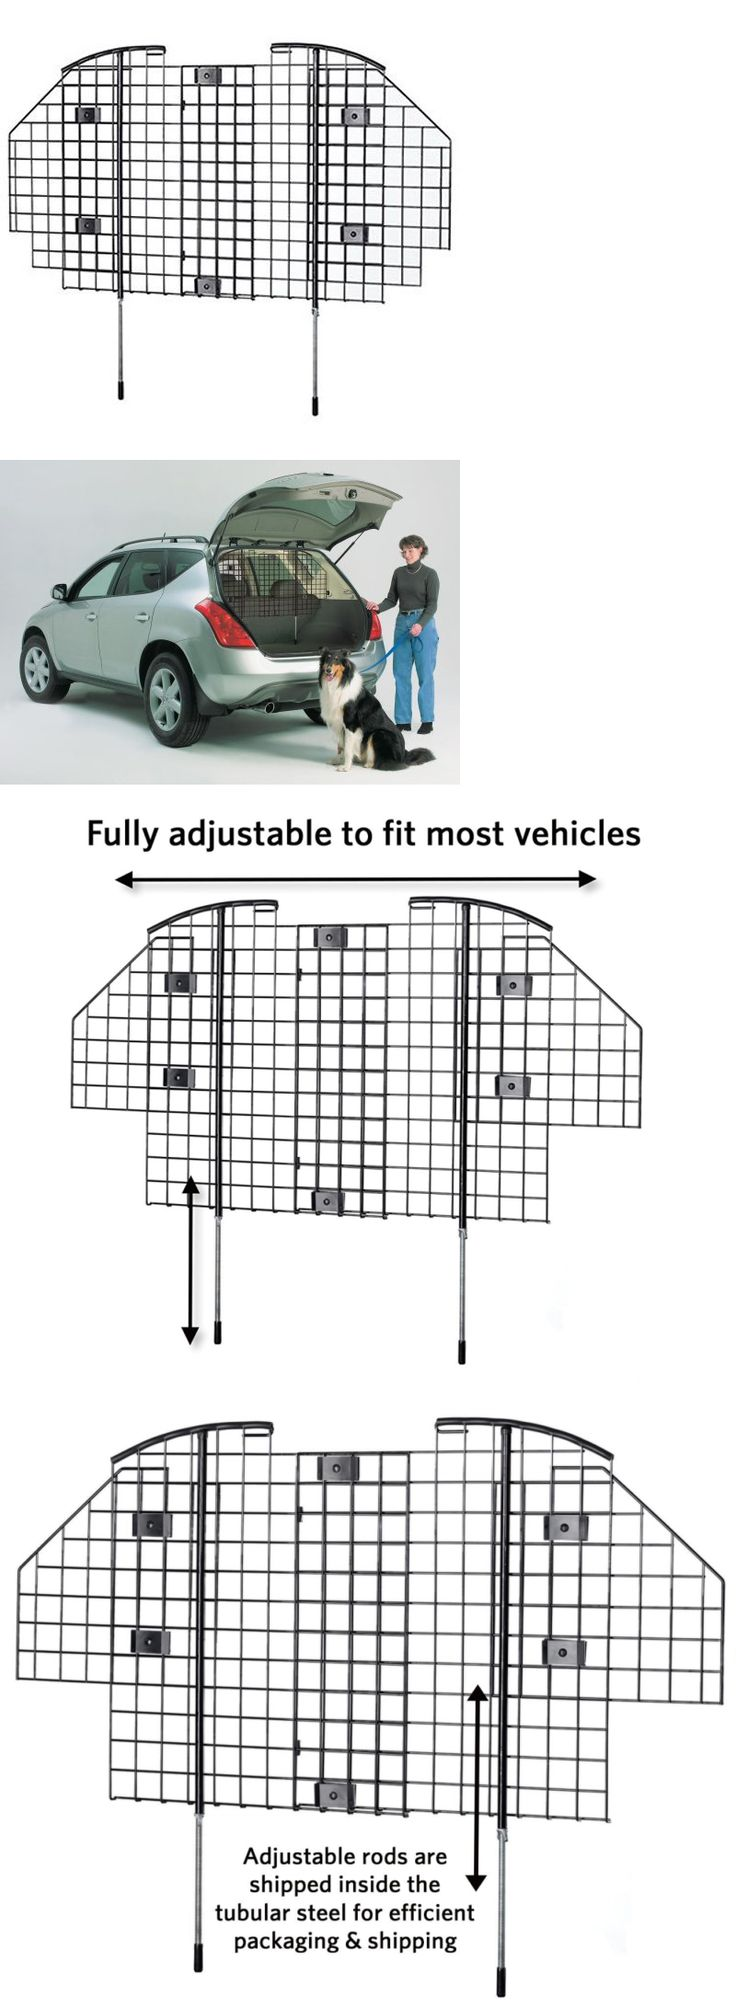 Car Seats and Barriers 46454: Midwest Pet Dog Car Barrier Guard Automotive Safety Protect Suv Vehicle Travel -> BUY IT NOW ONLY: $58.49 on eBay!